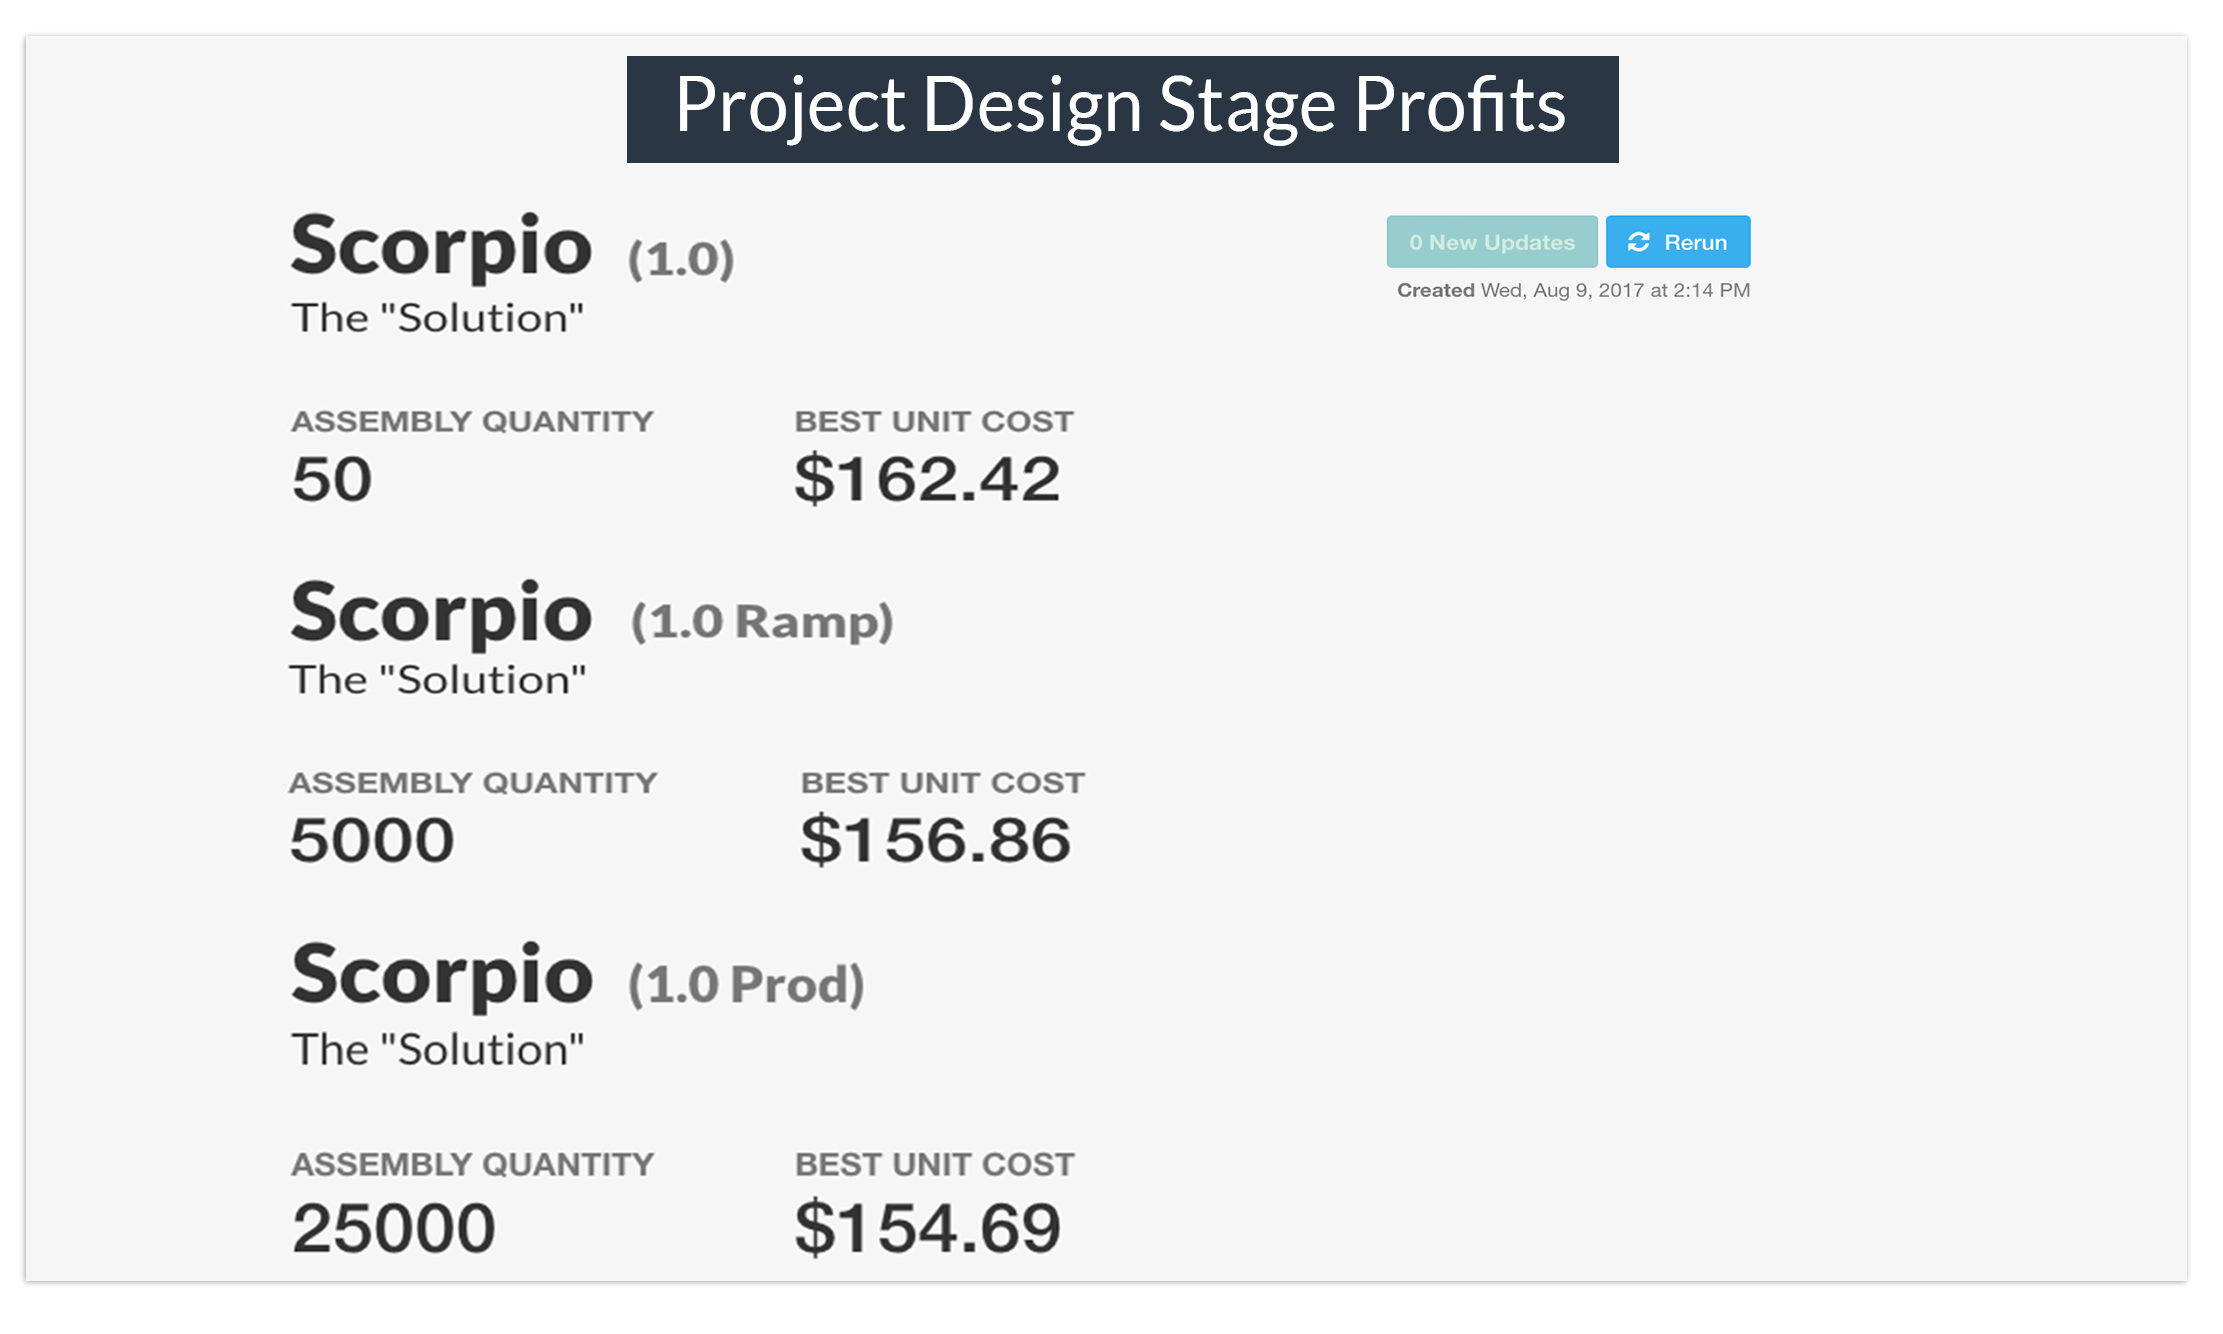 Project Design Stage Profits Cost Modeling Callout